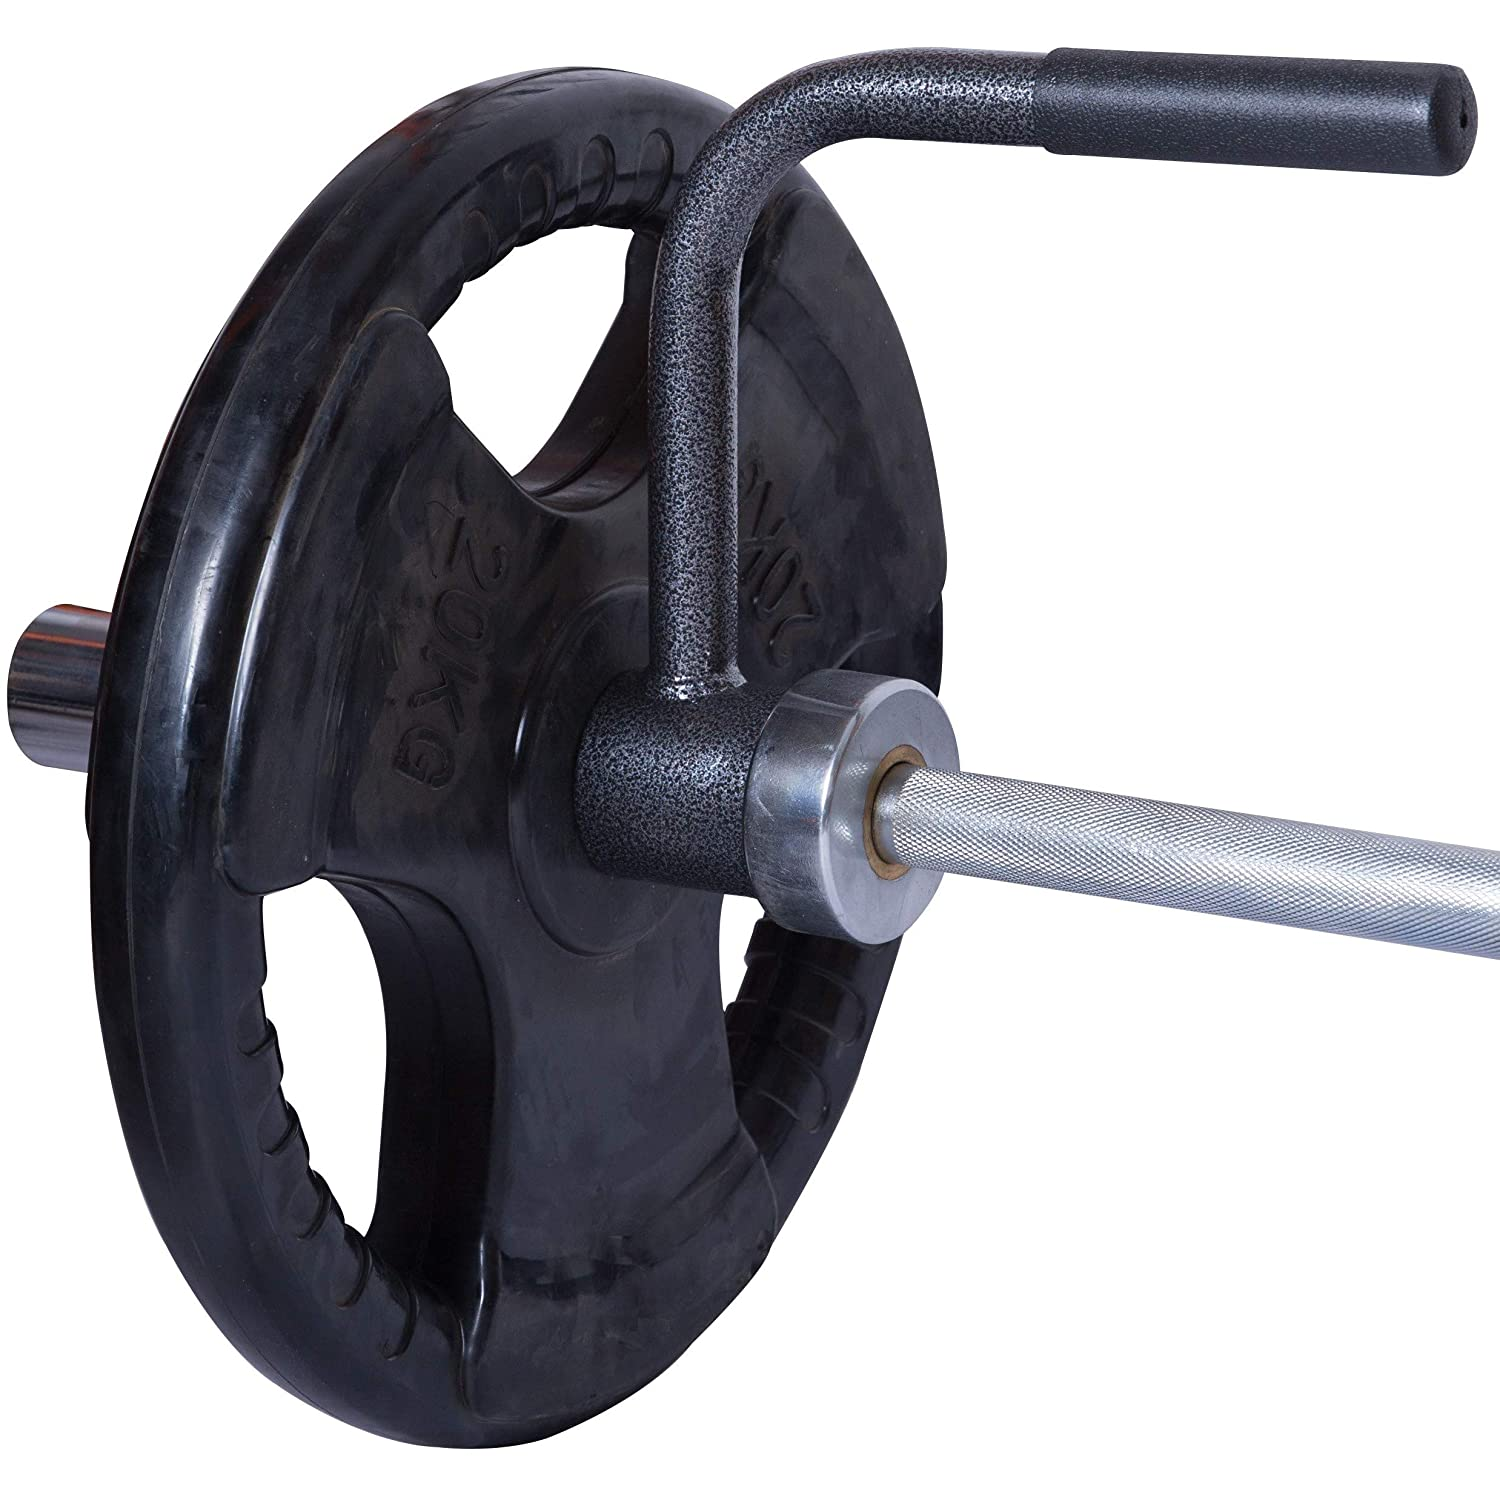 GYM MASTER Single Landmine Handle For Use With Olympic 2 50mm Bars